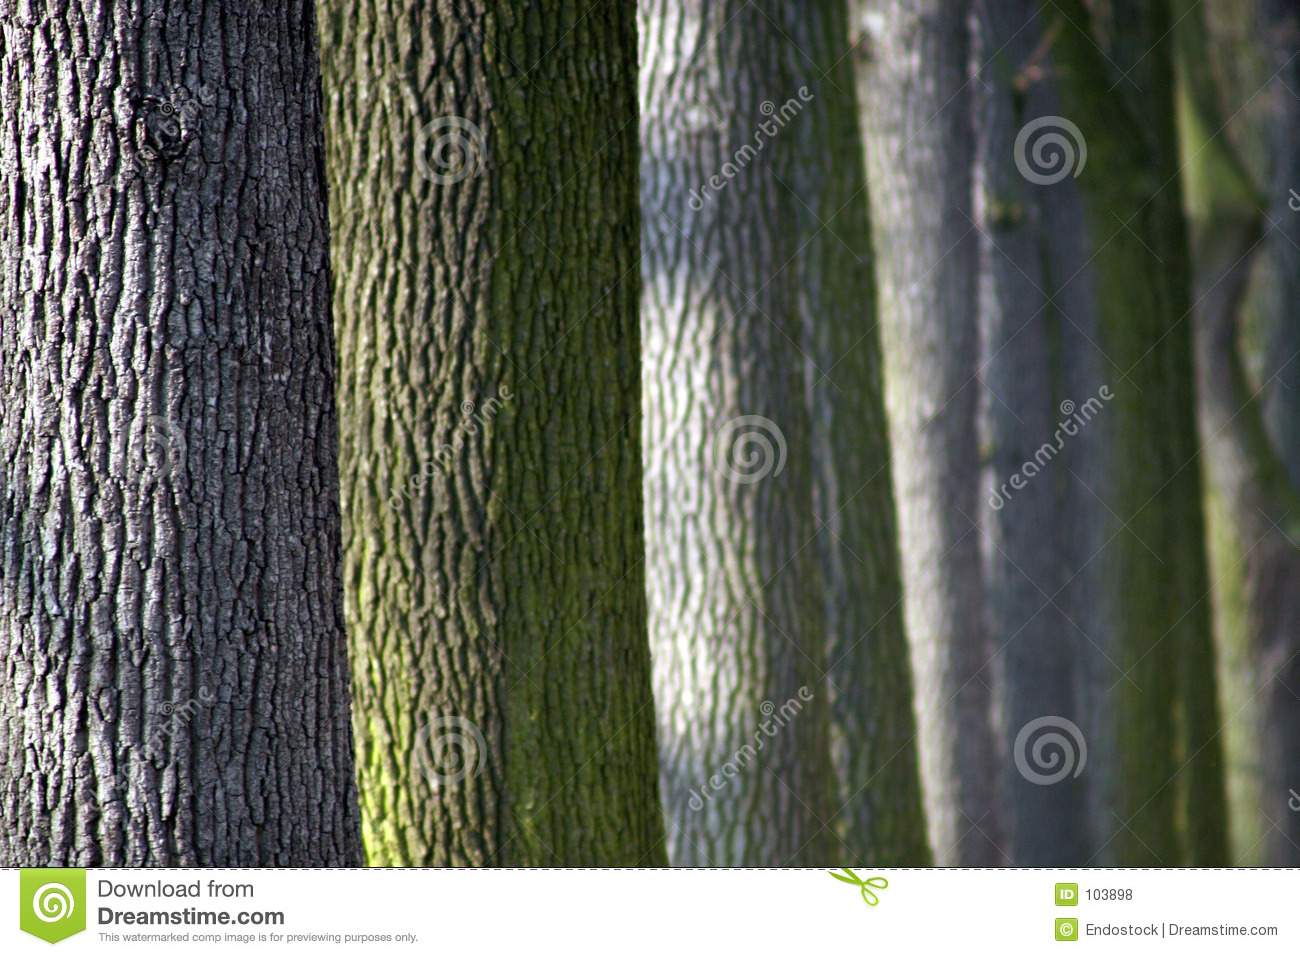 Colourful trunks of trees